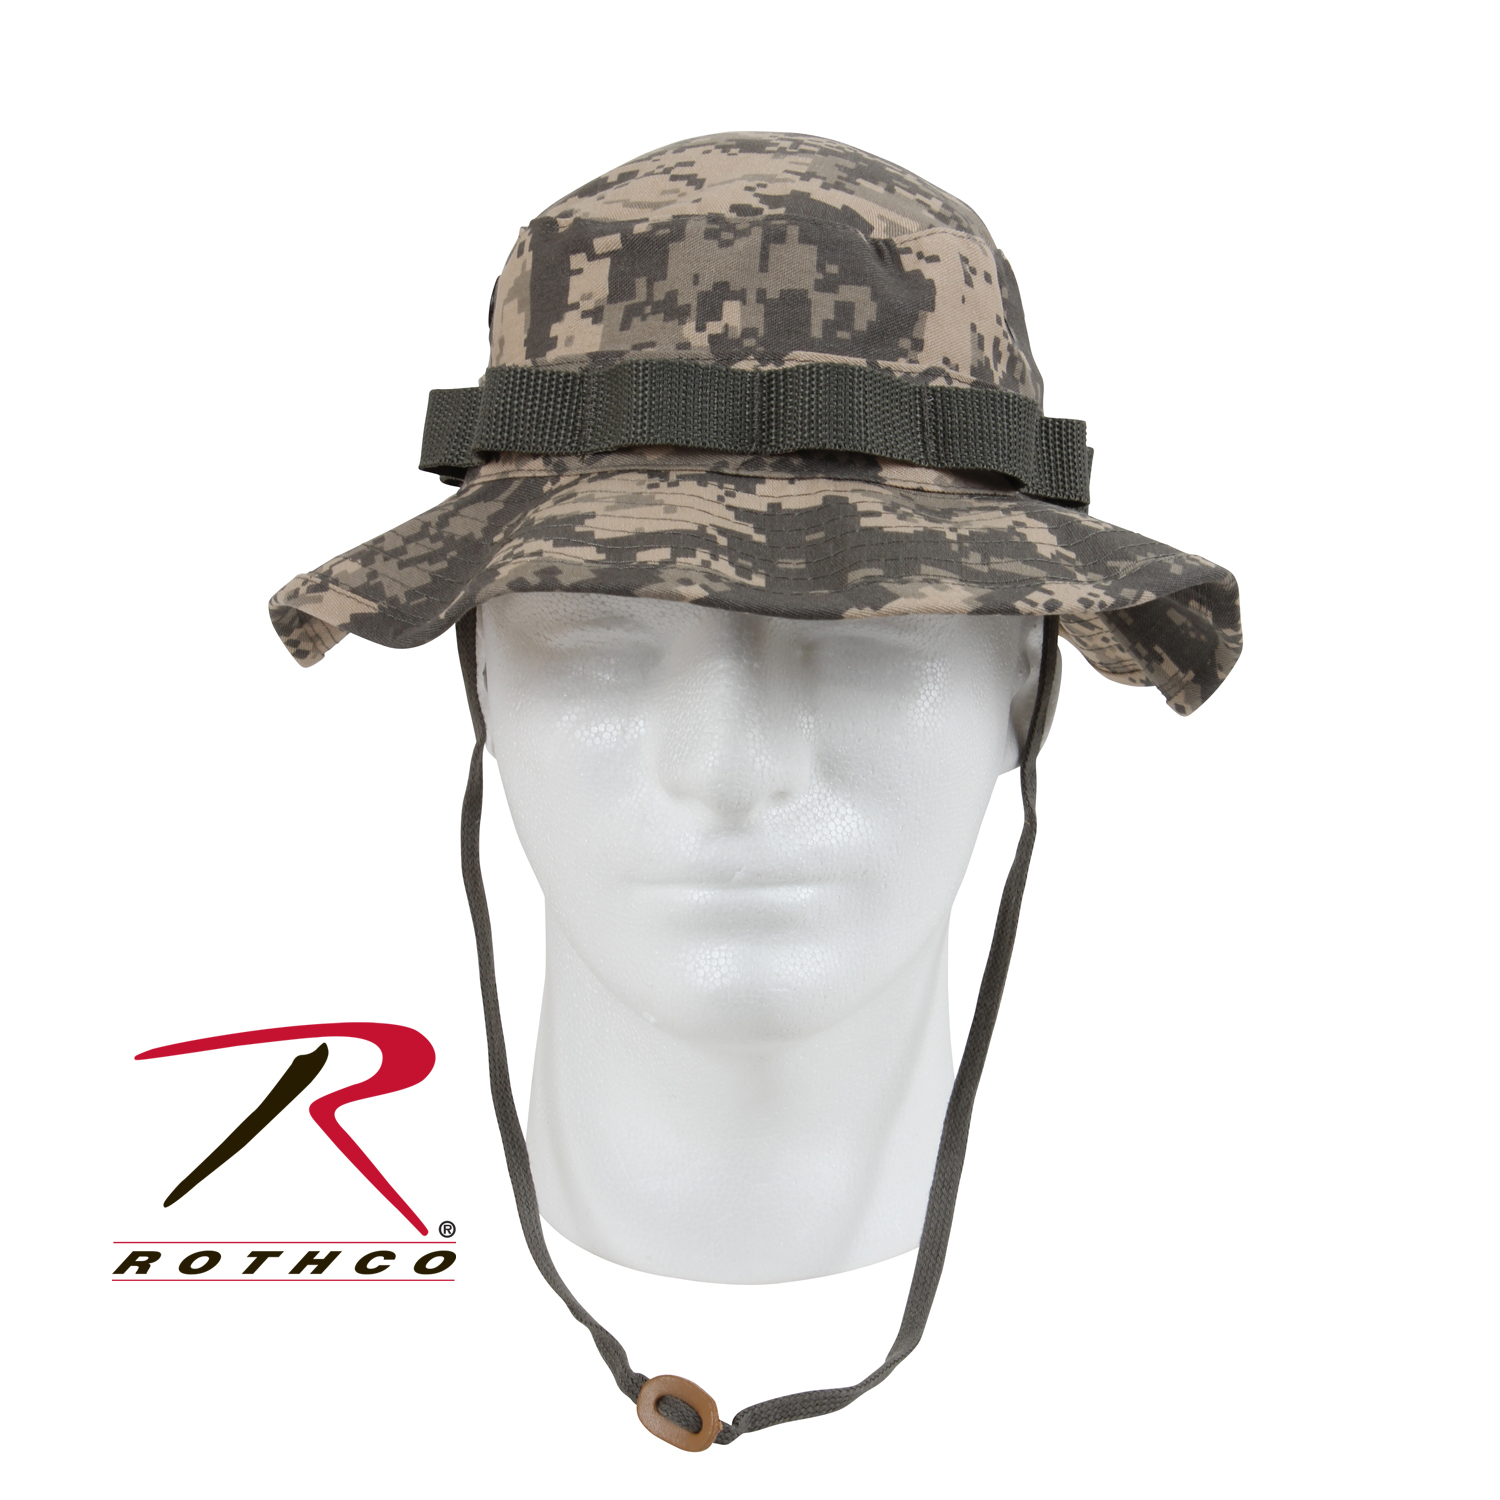 76dc5579f963 ... army cap,fishing hat. Loading zoom